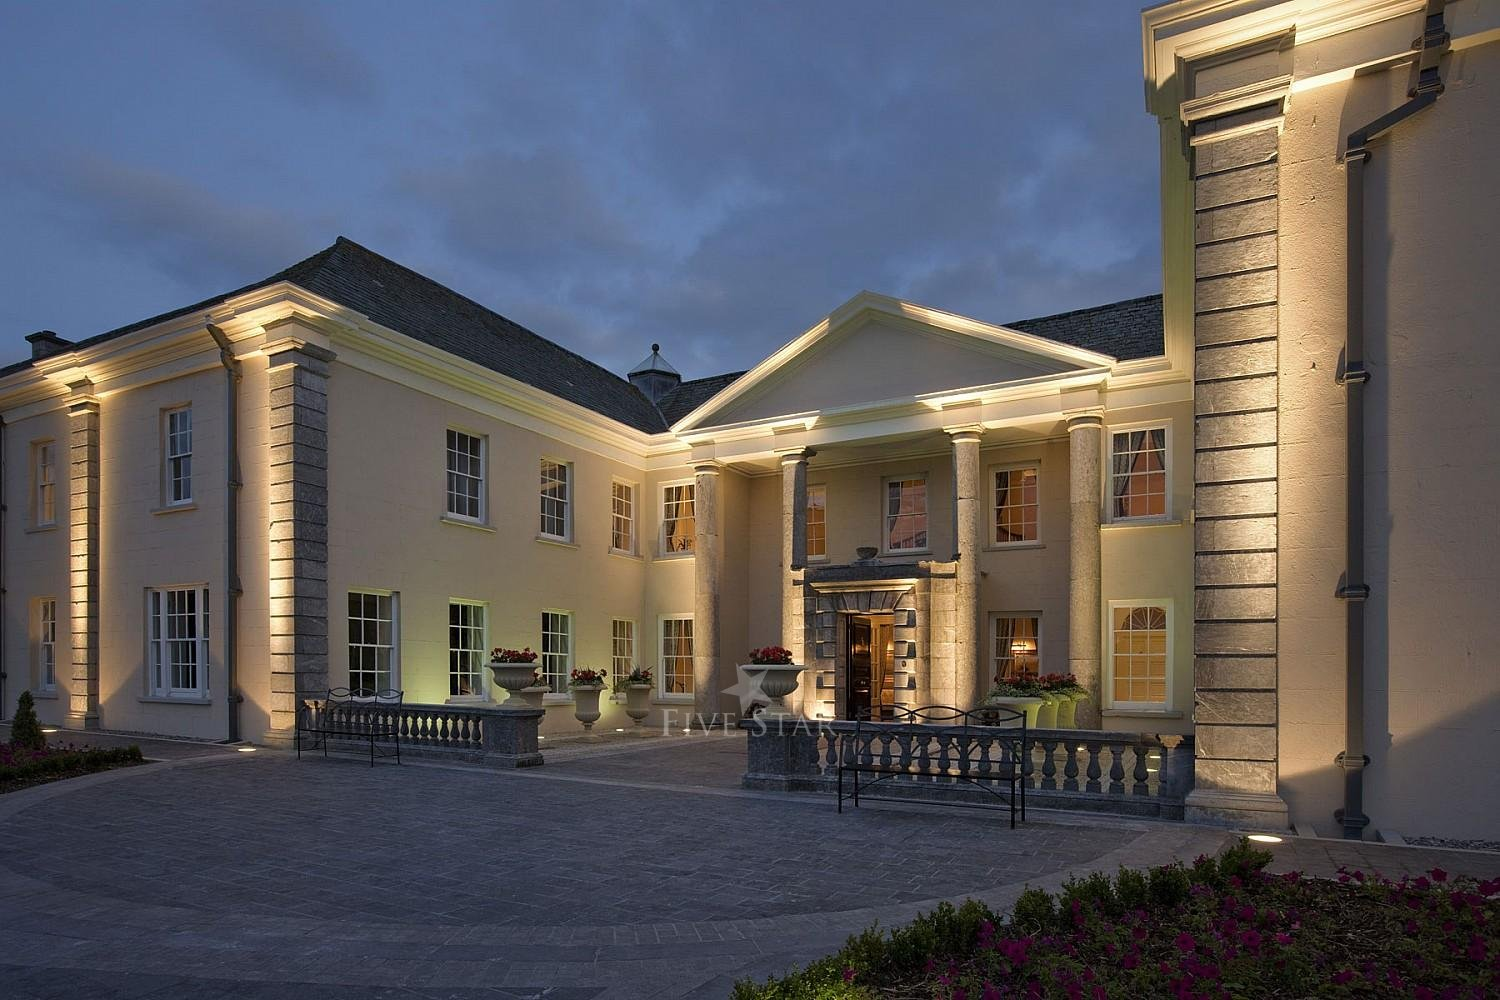 Castlemartyr, County Cork photo 3